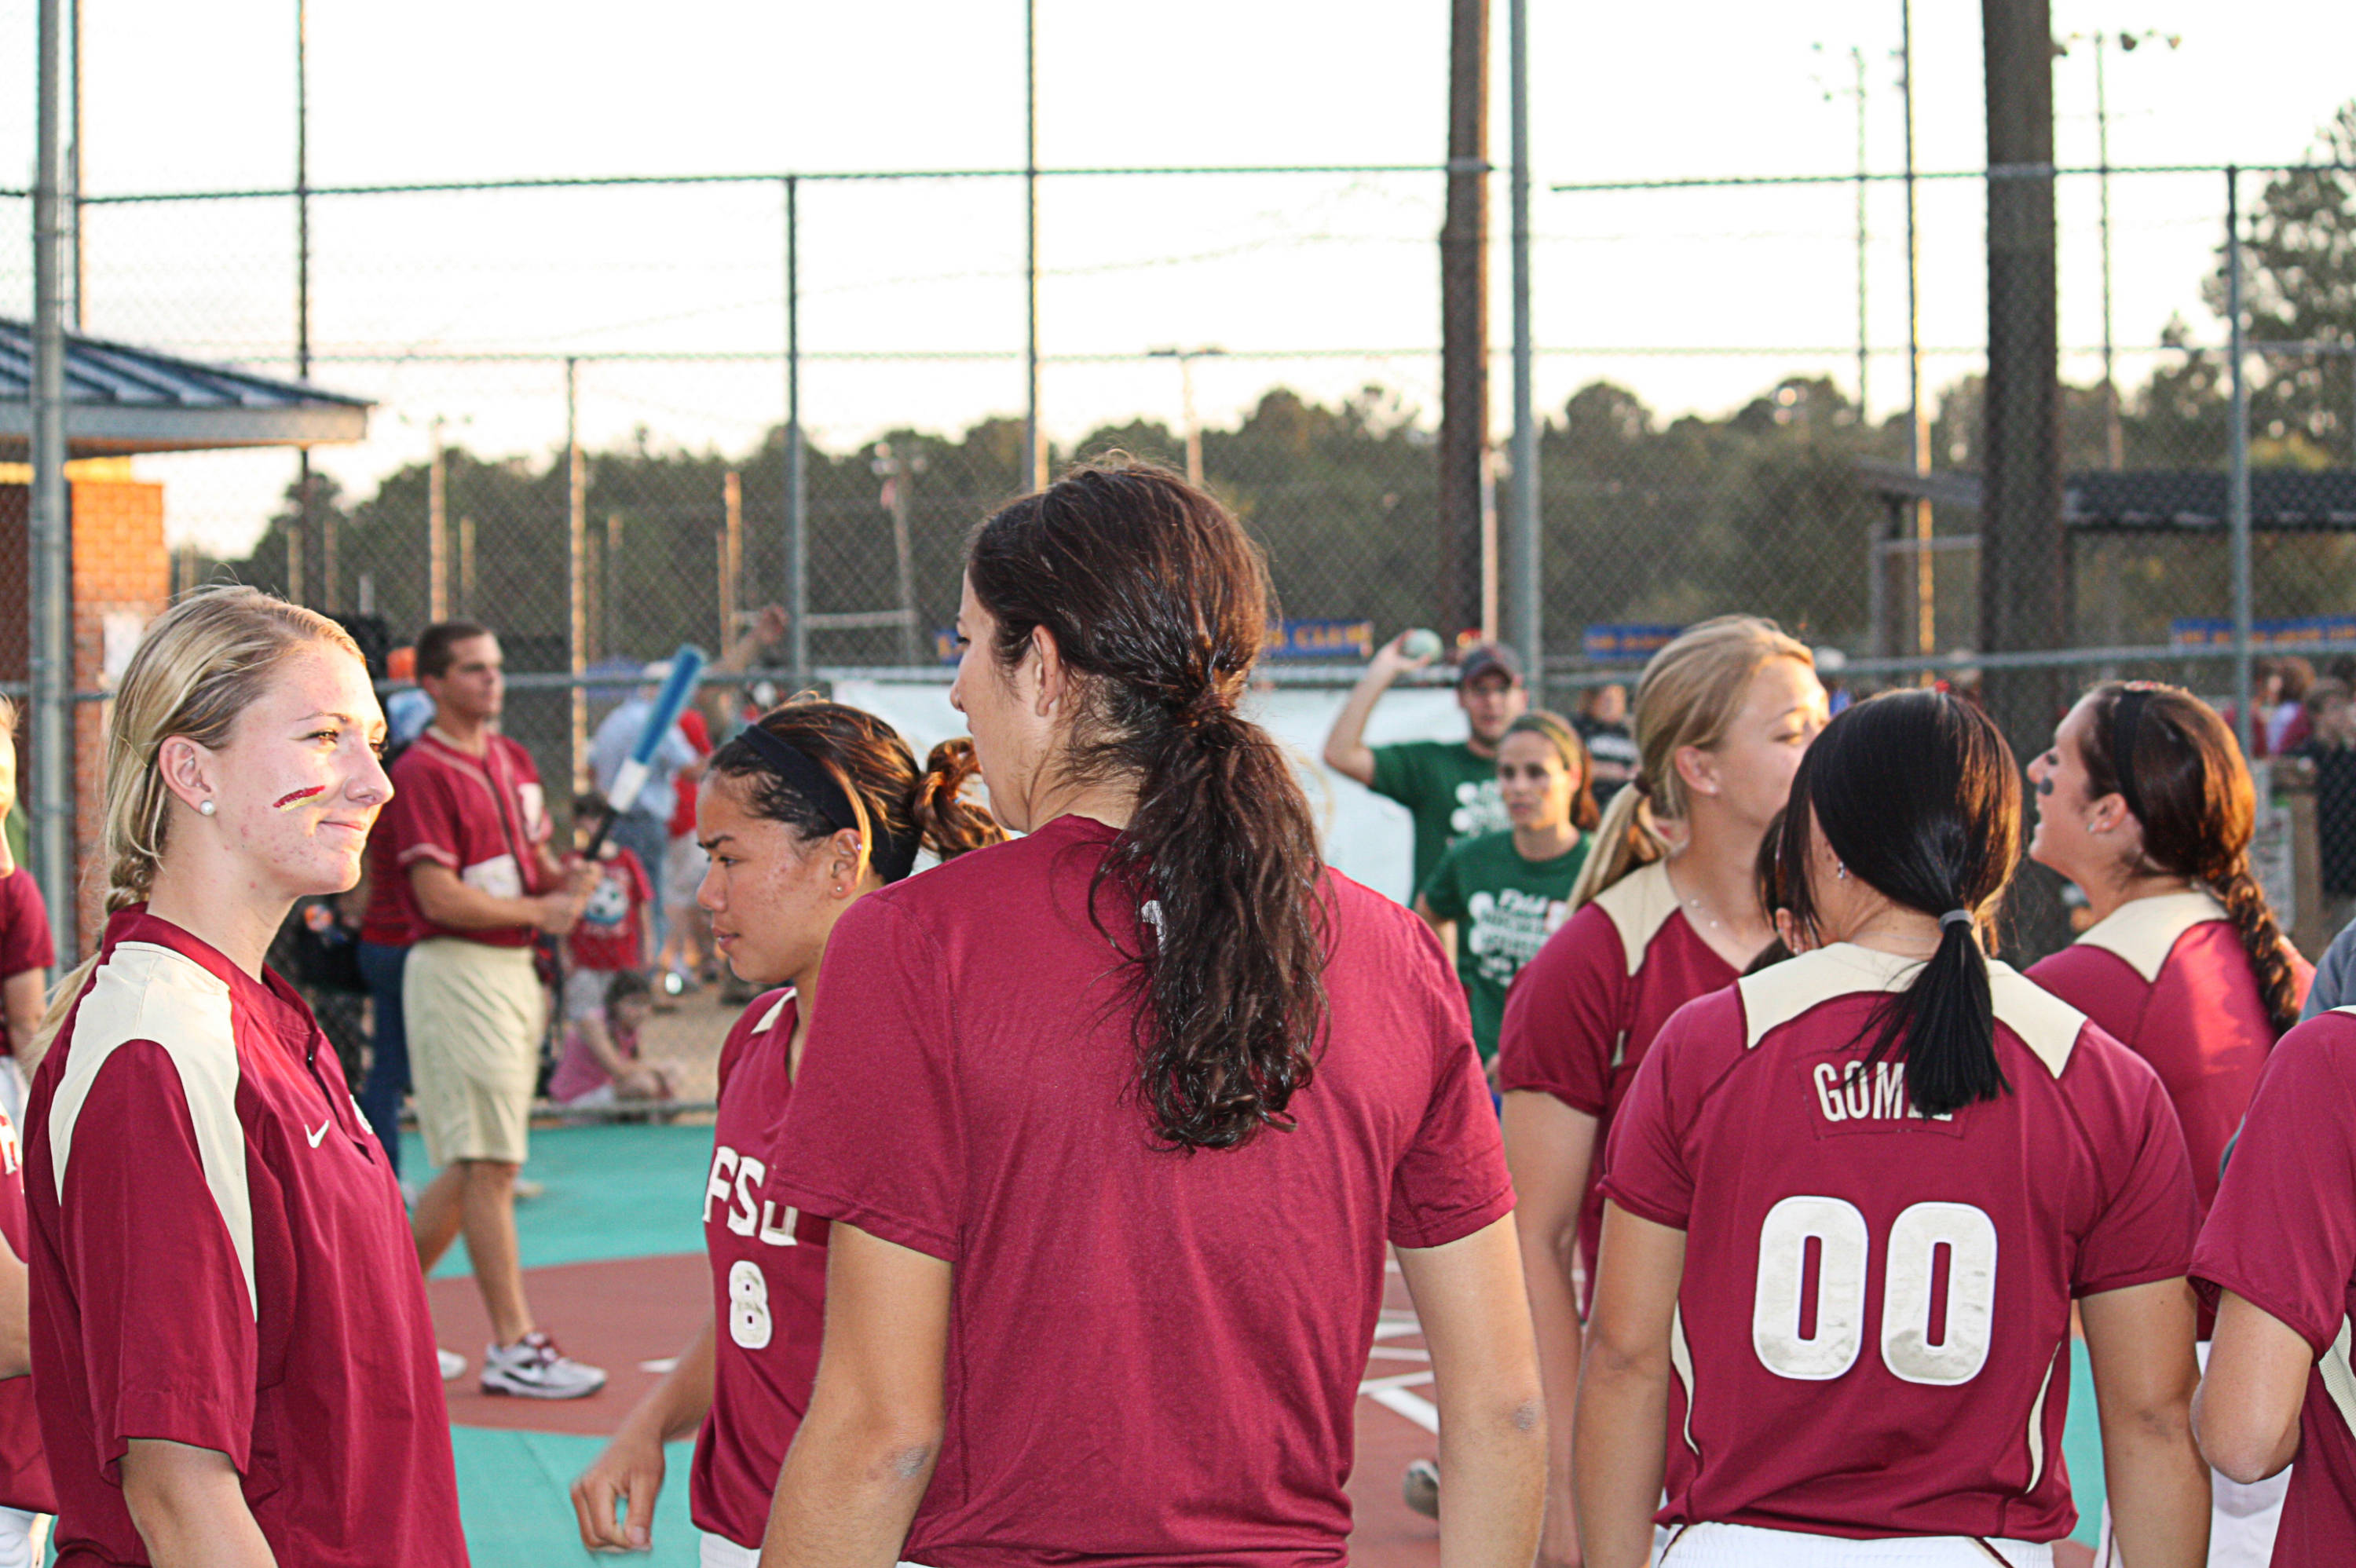 Softball players chatting